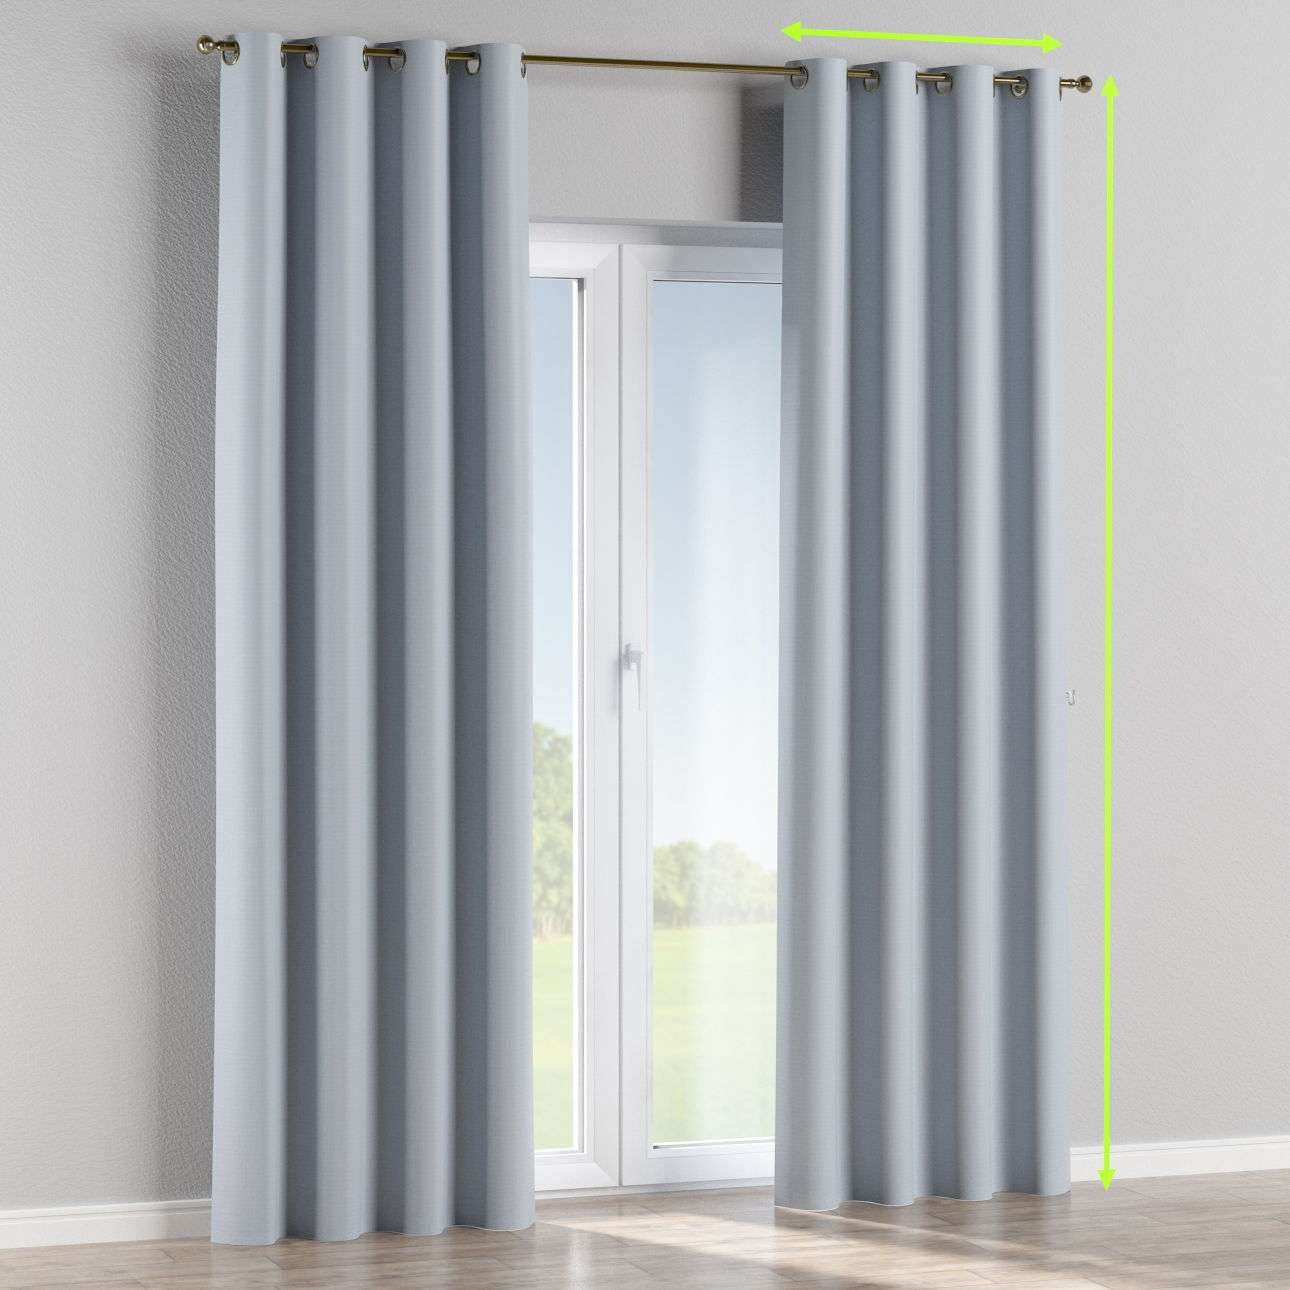 Eyelet curtain in collection Blackout, fabric: 269-62